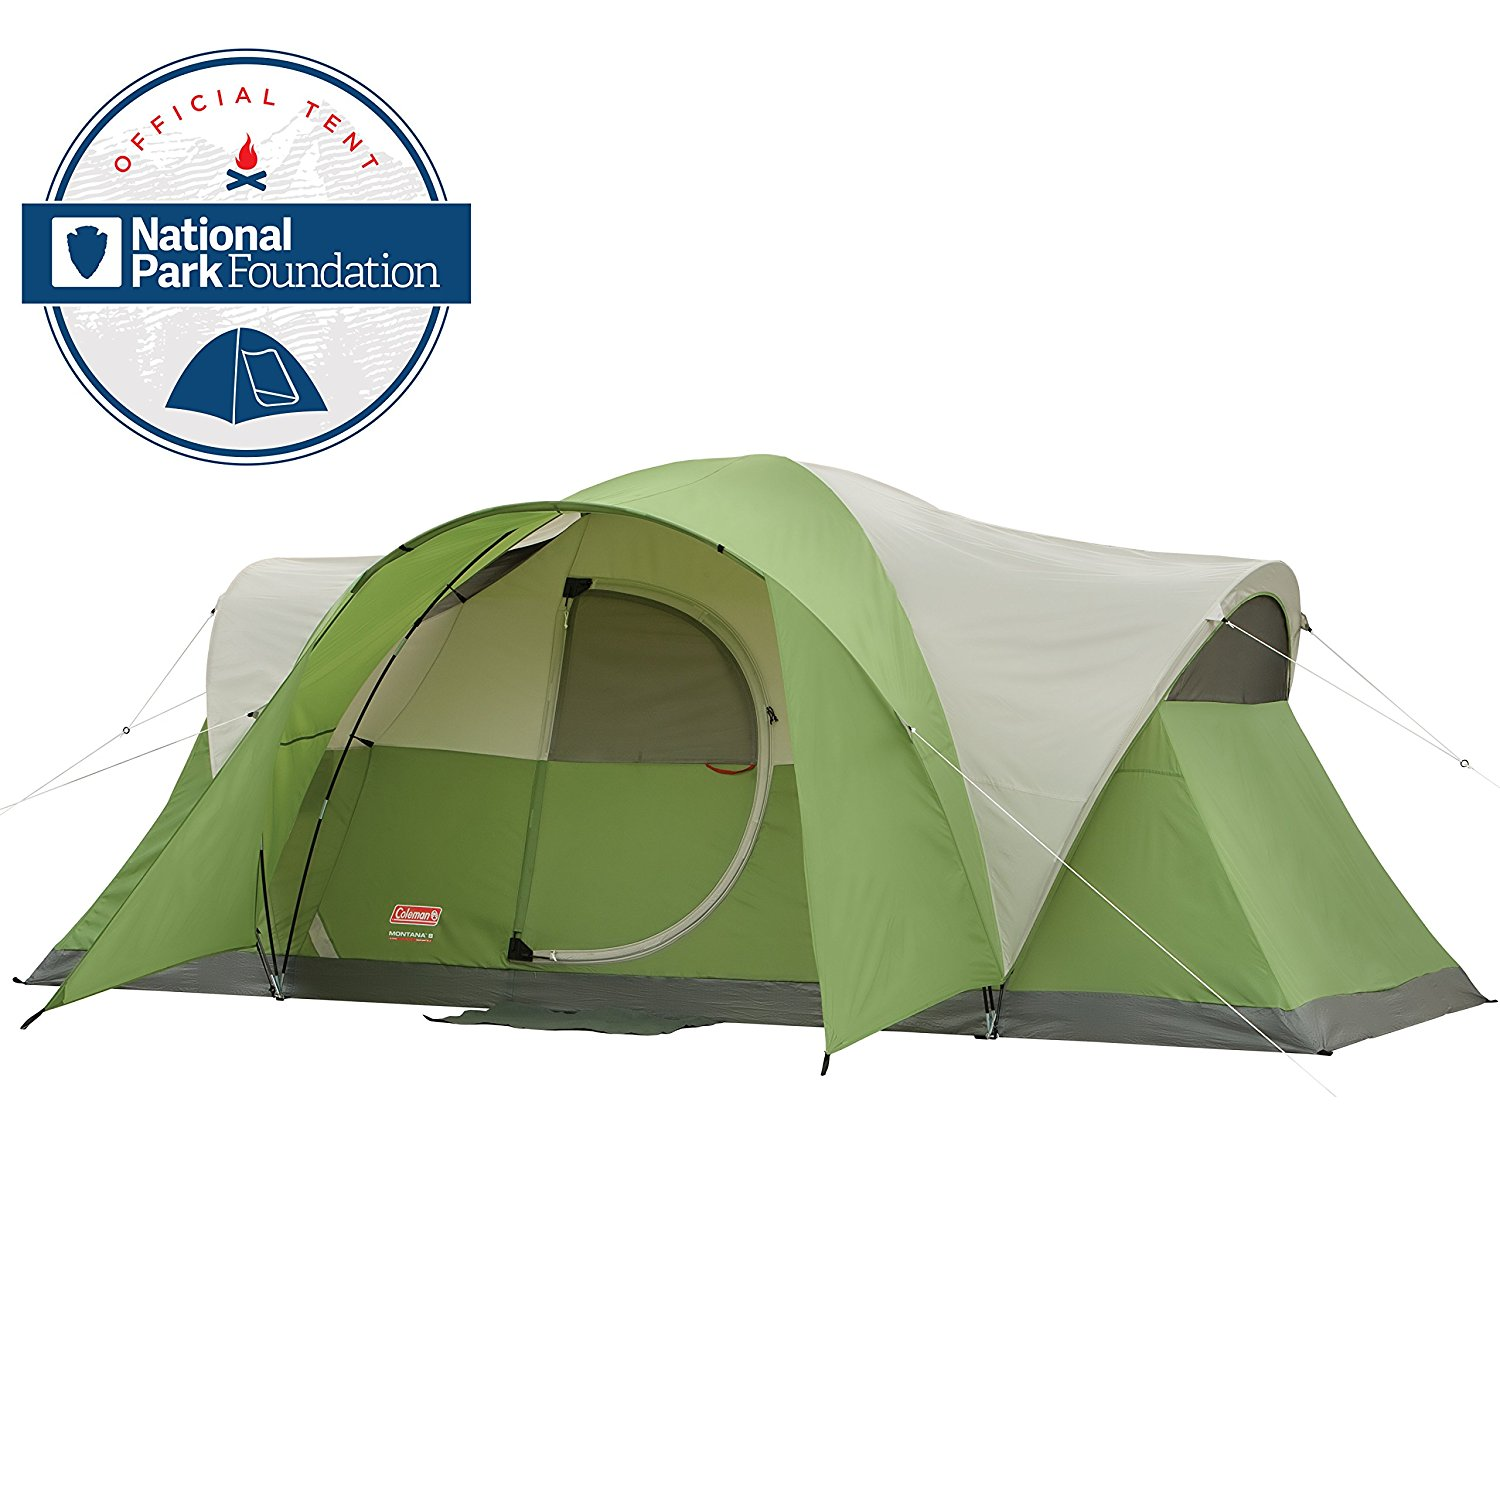 Top 10 Super Large Family Camping Tents In 2018 Reviews